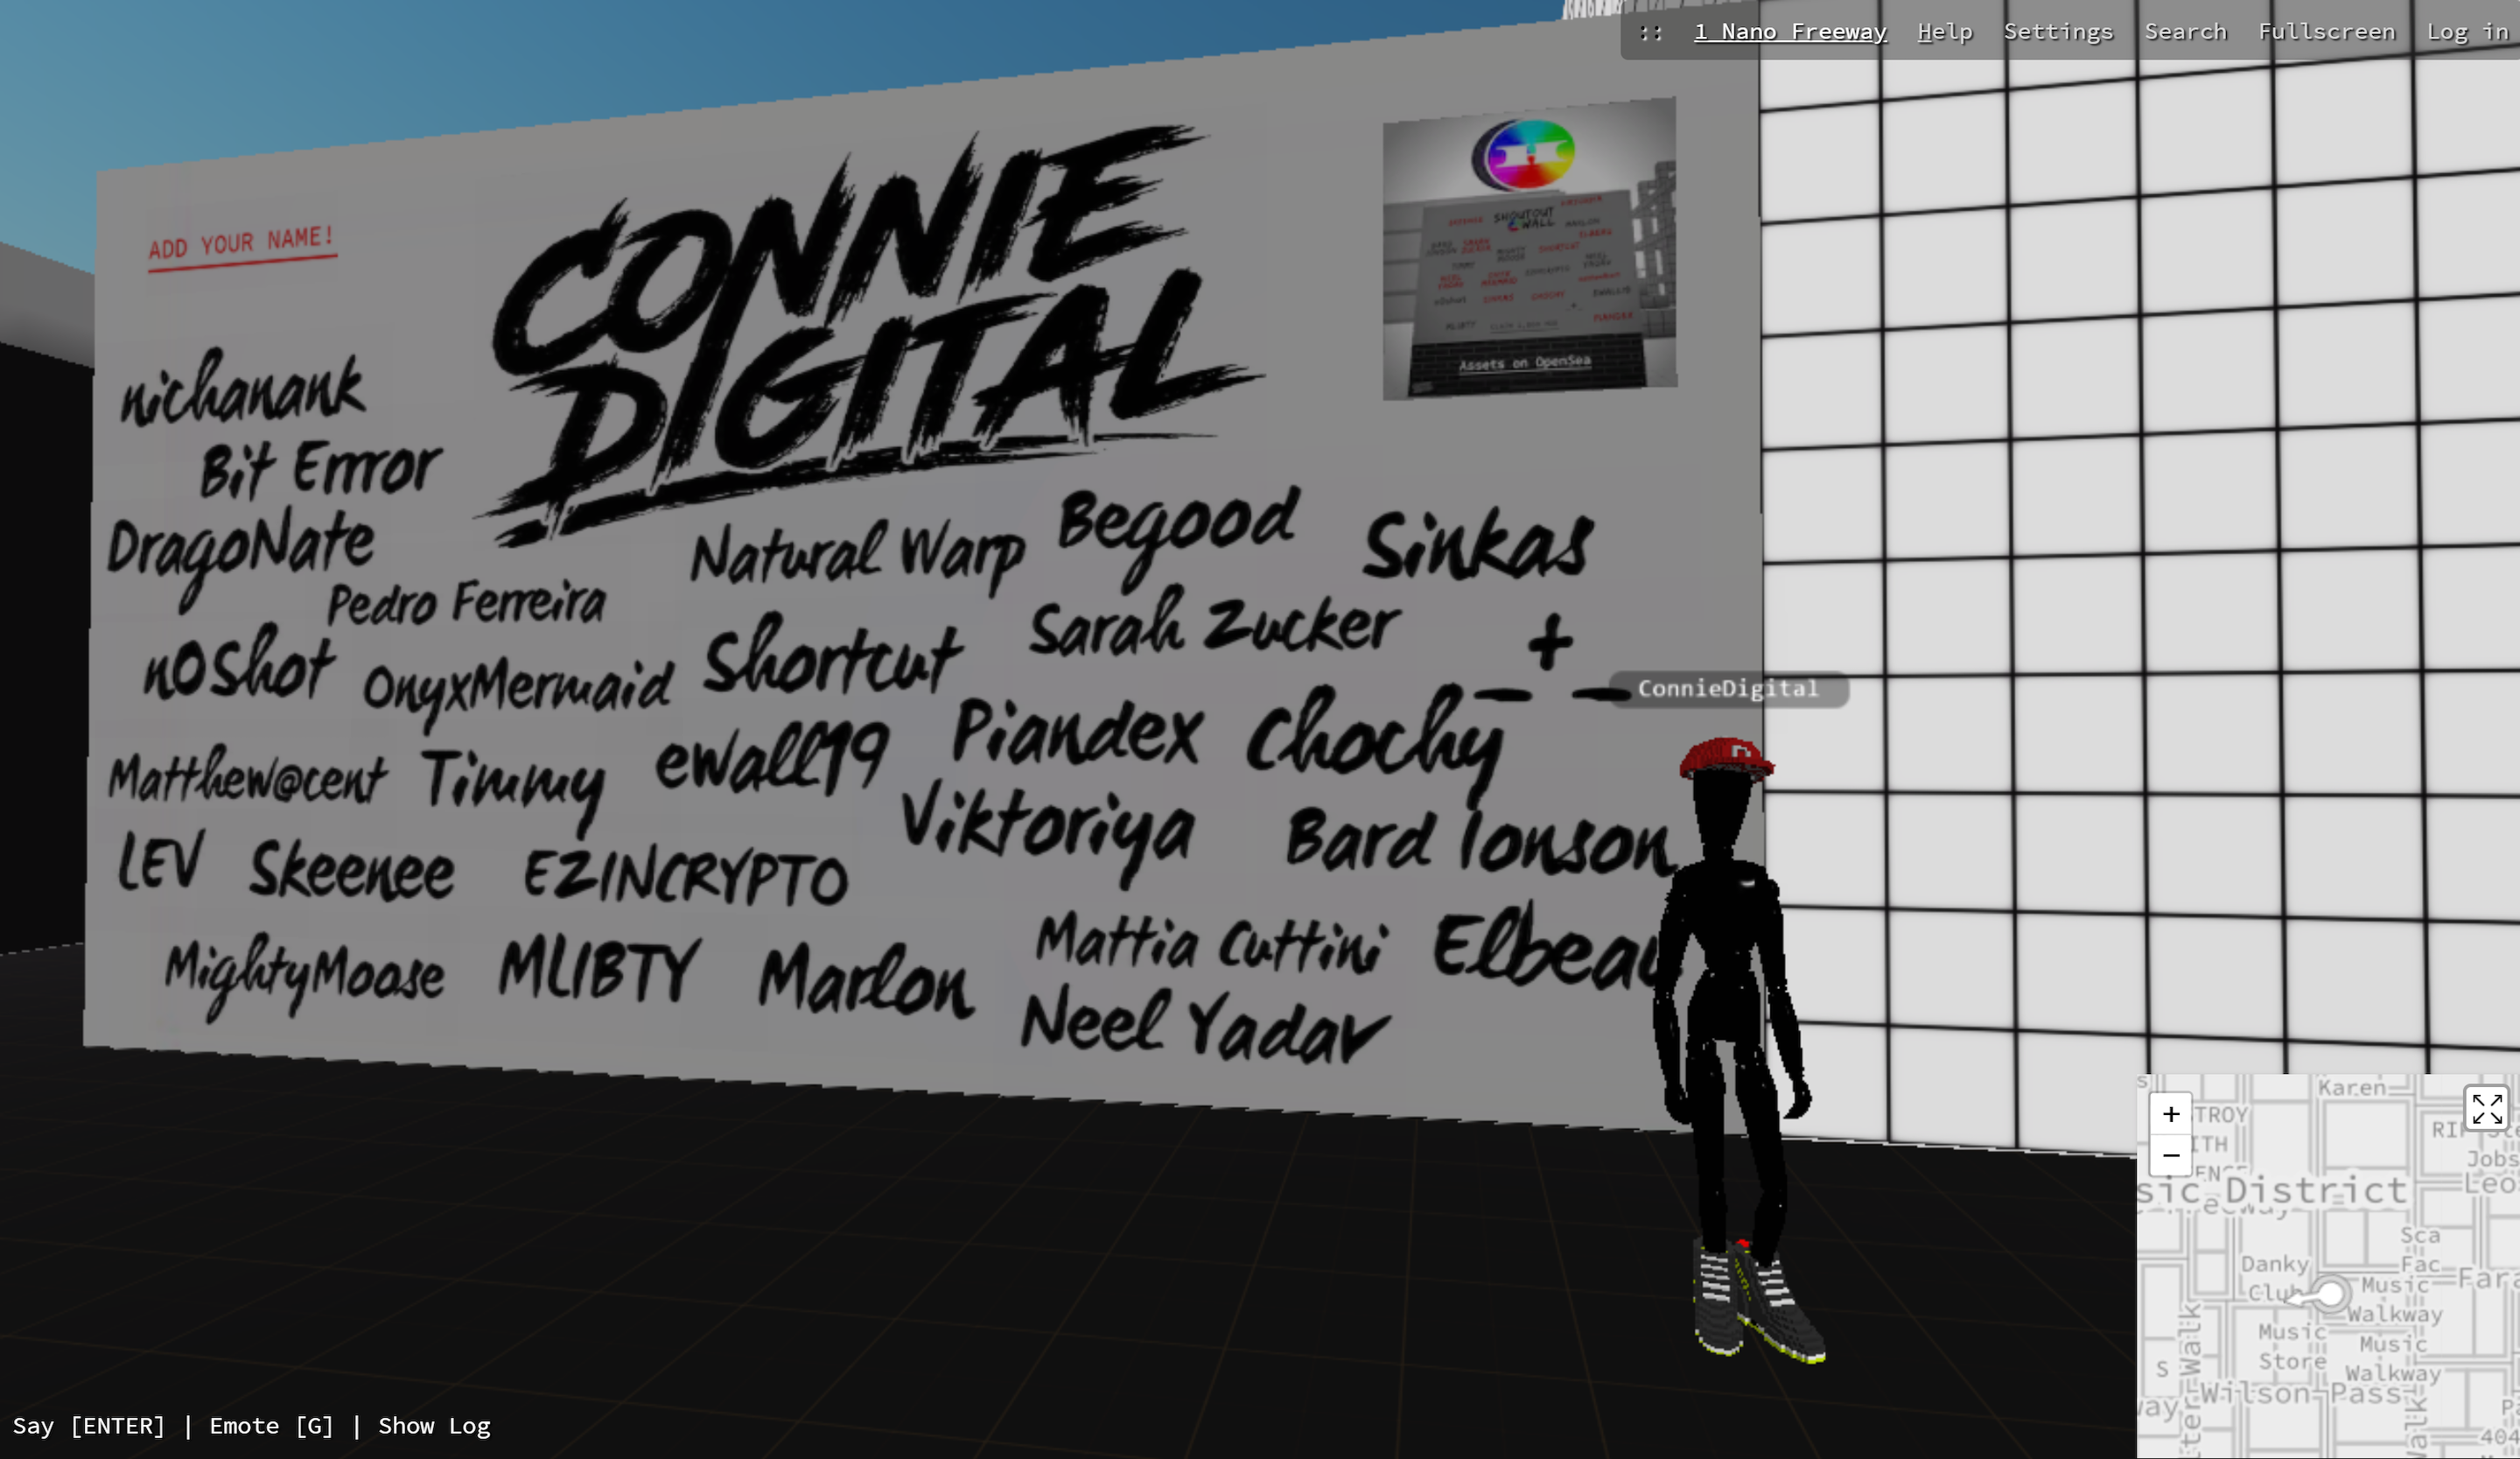 Danky Club_Cryptovoxels_Connie Digital_Shoutout Wall